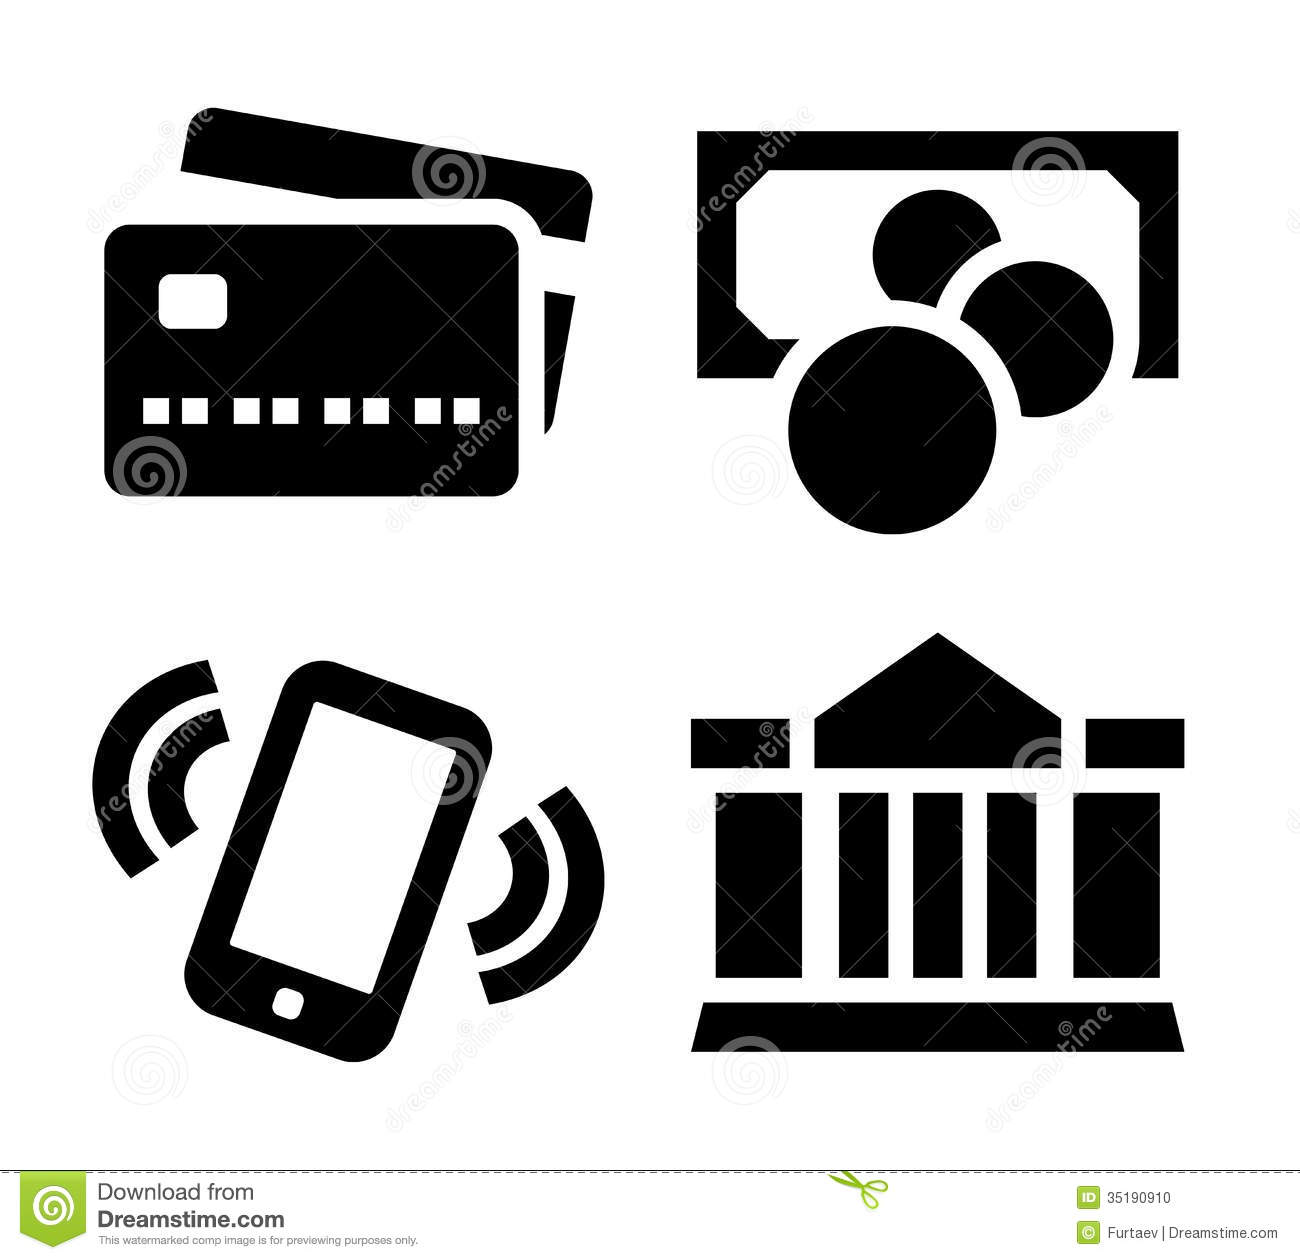 Bank transfer clipart svg freeuse Payment Icon Set Stock Photo - Image: 35190910 svg freeuse